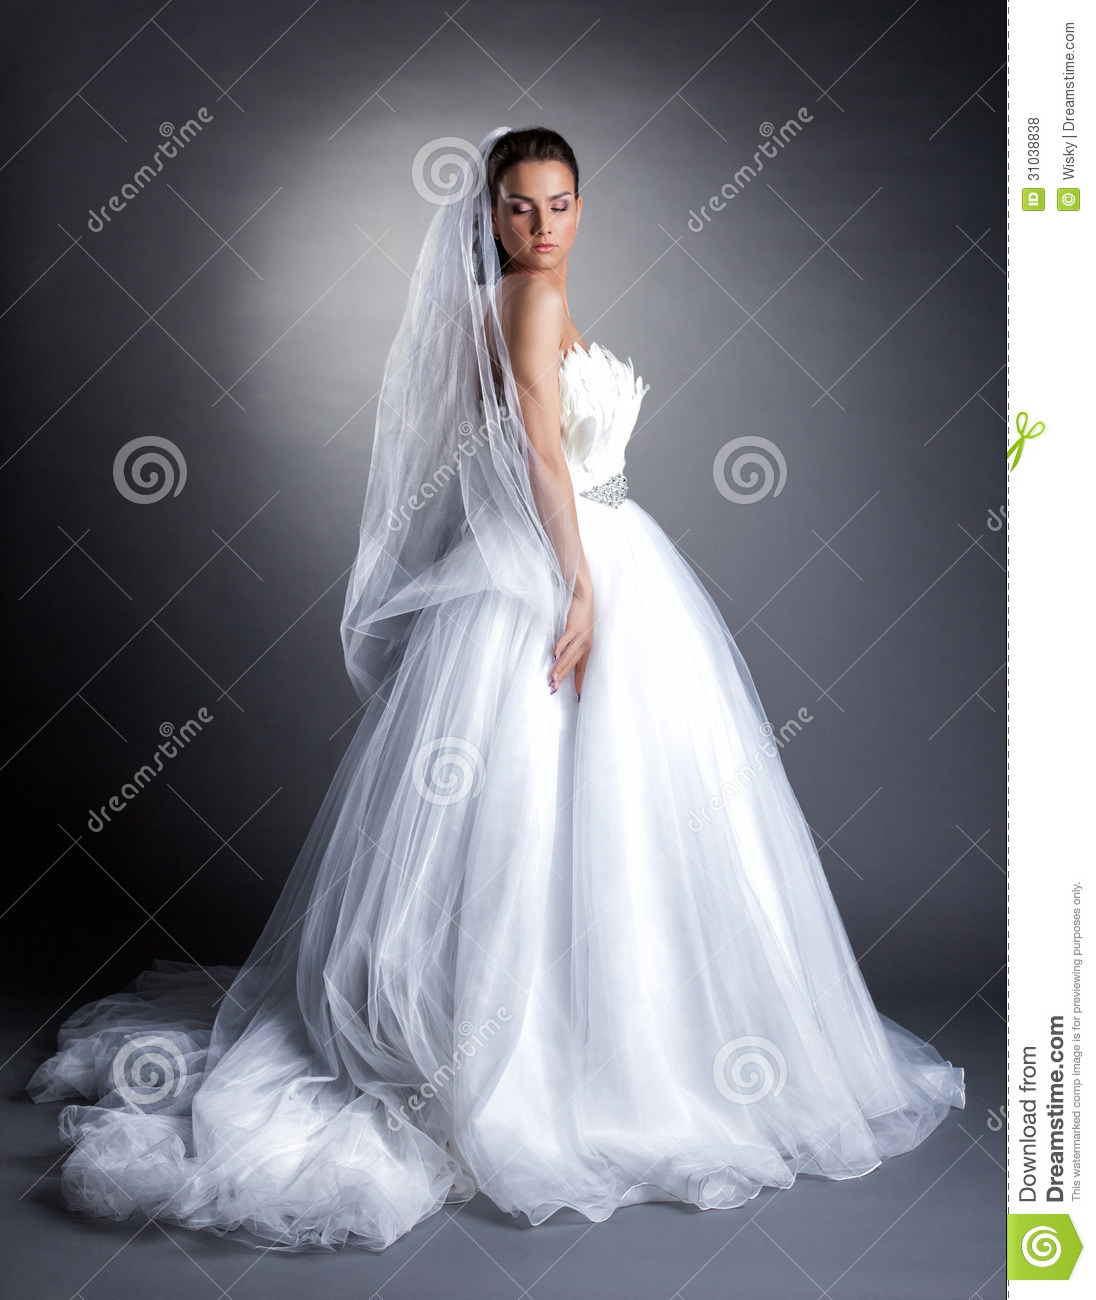 In white wedding dress royalty free stock photos long hairstyles